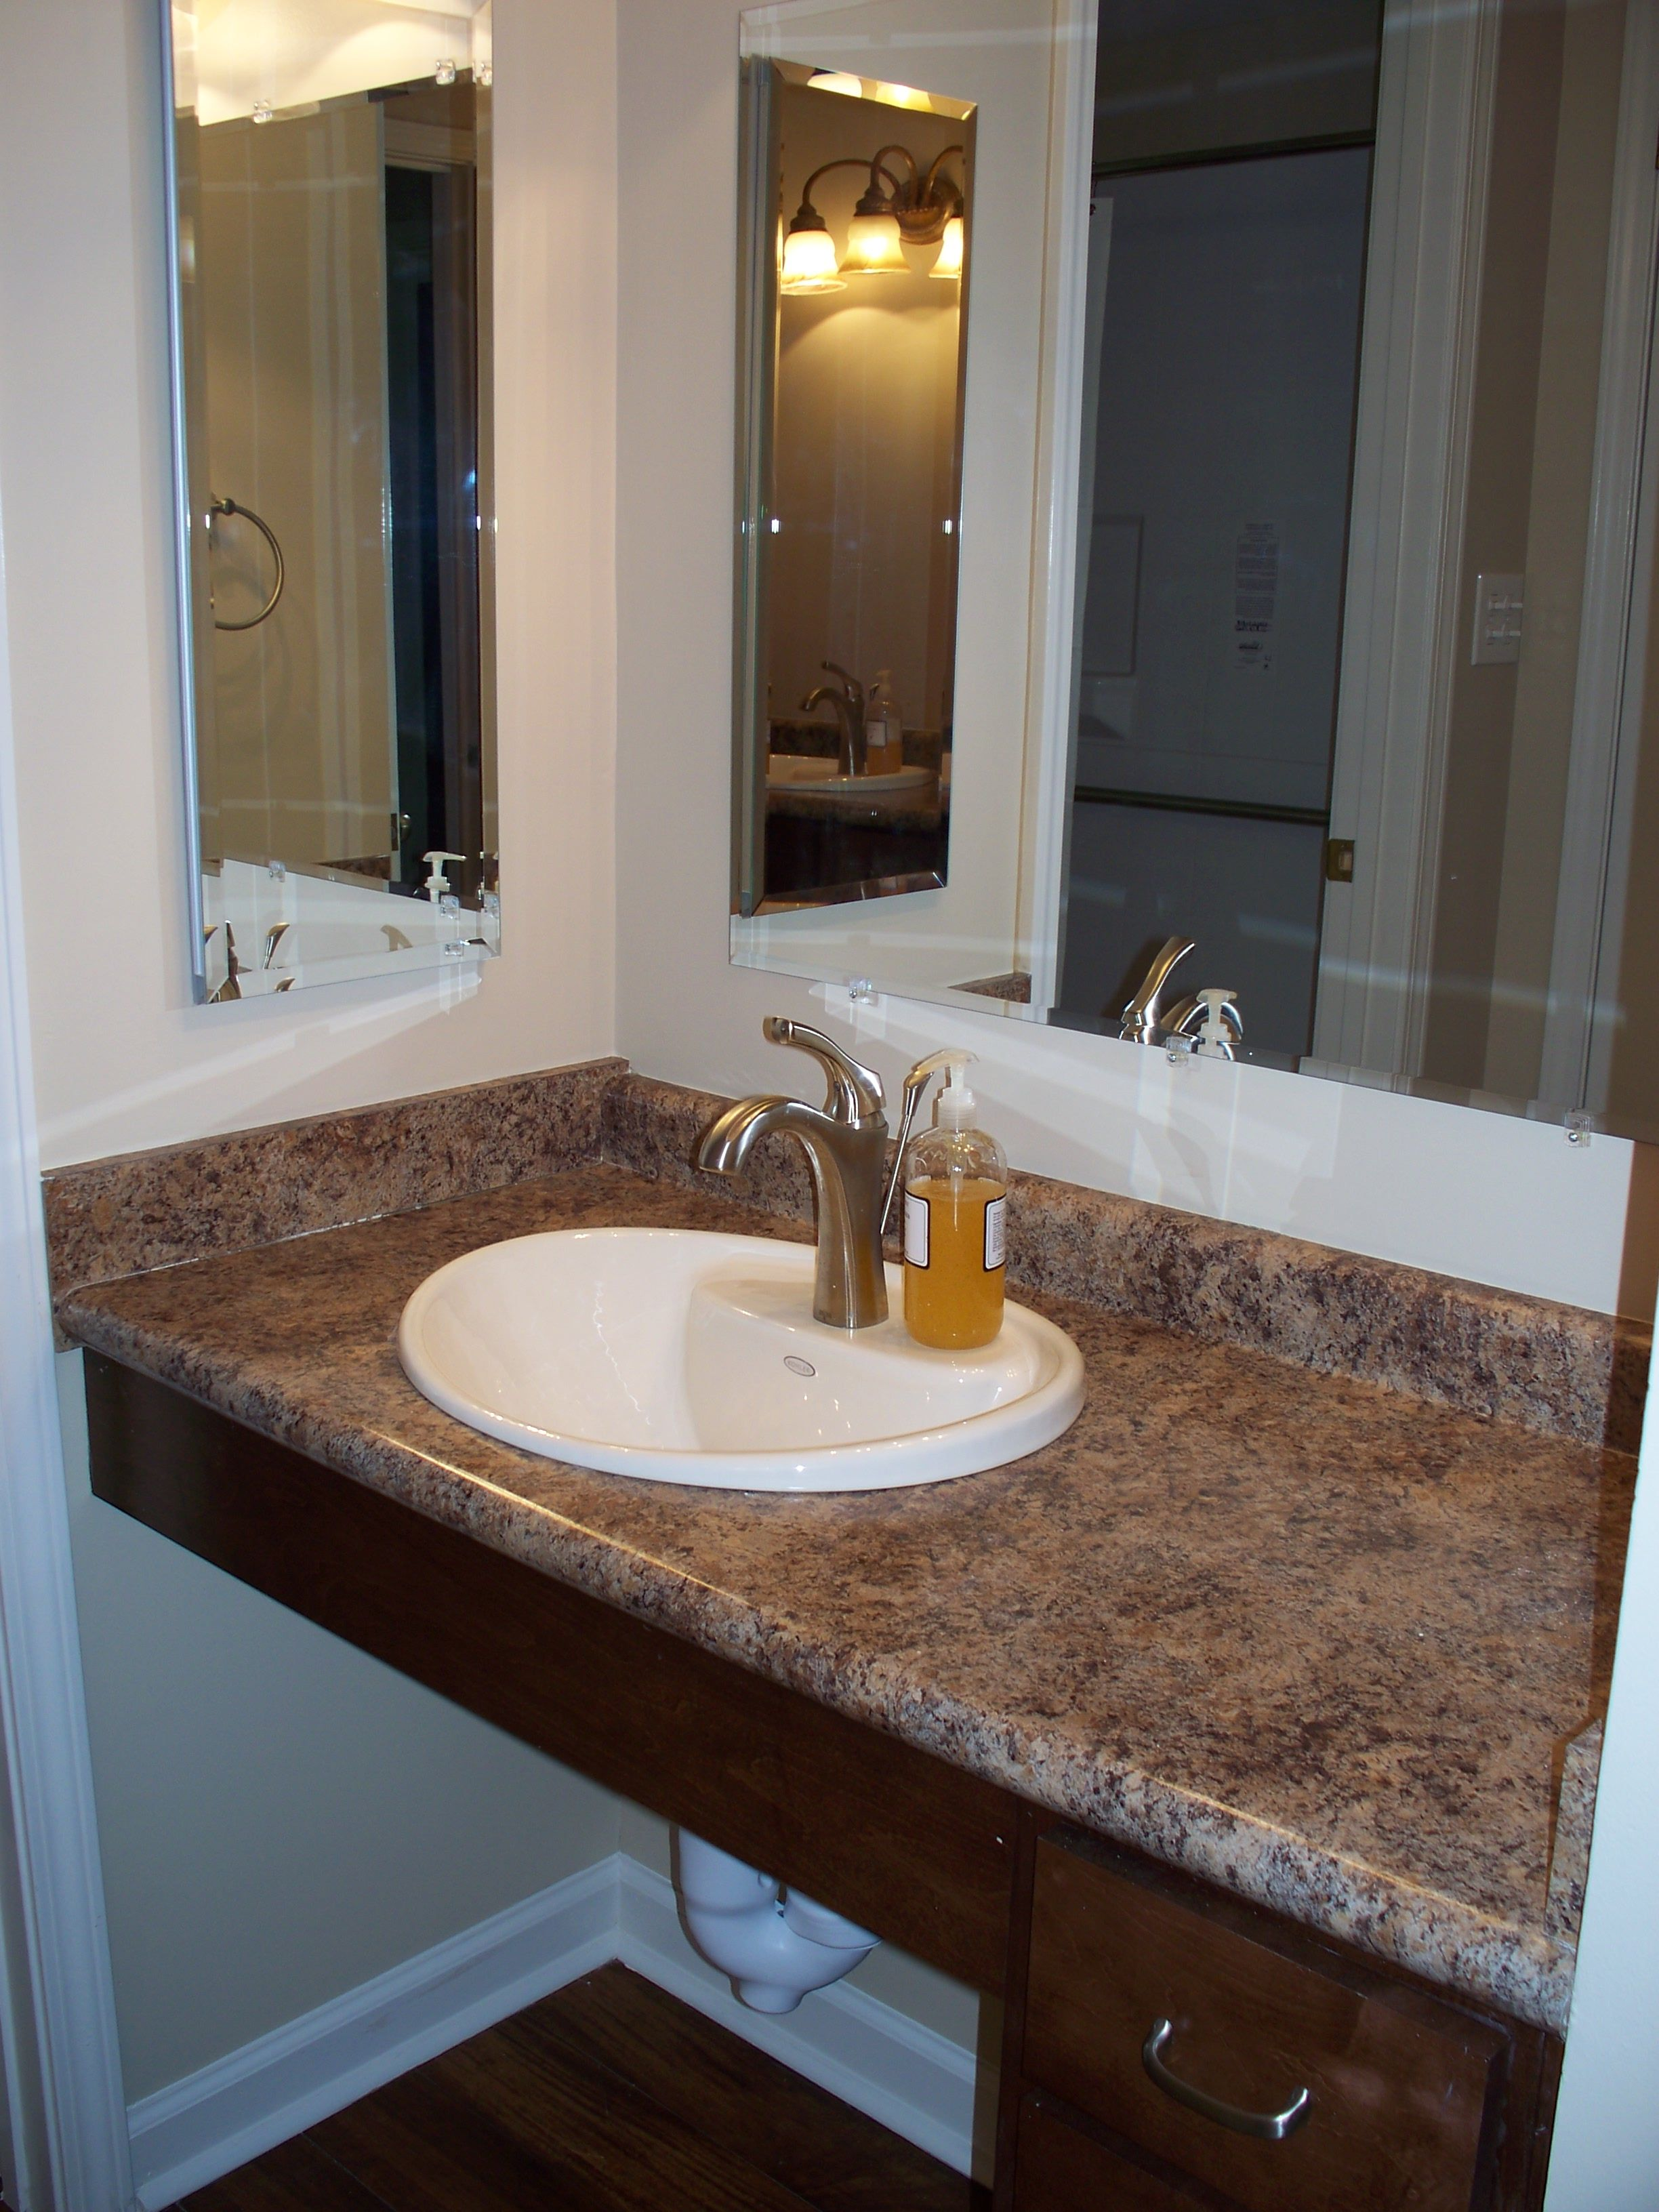 Example of a wheelchair accessible vanity. Note the lever handle ...